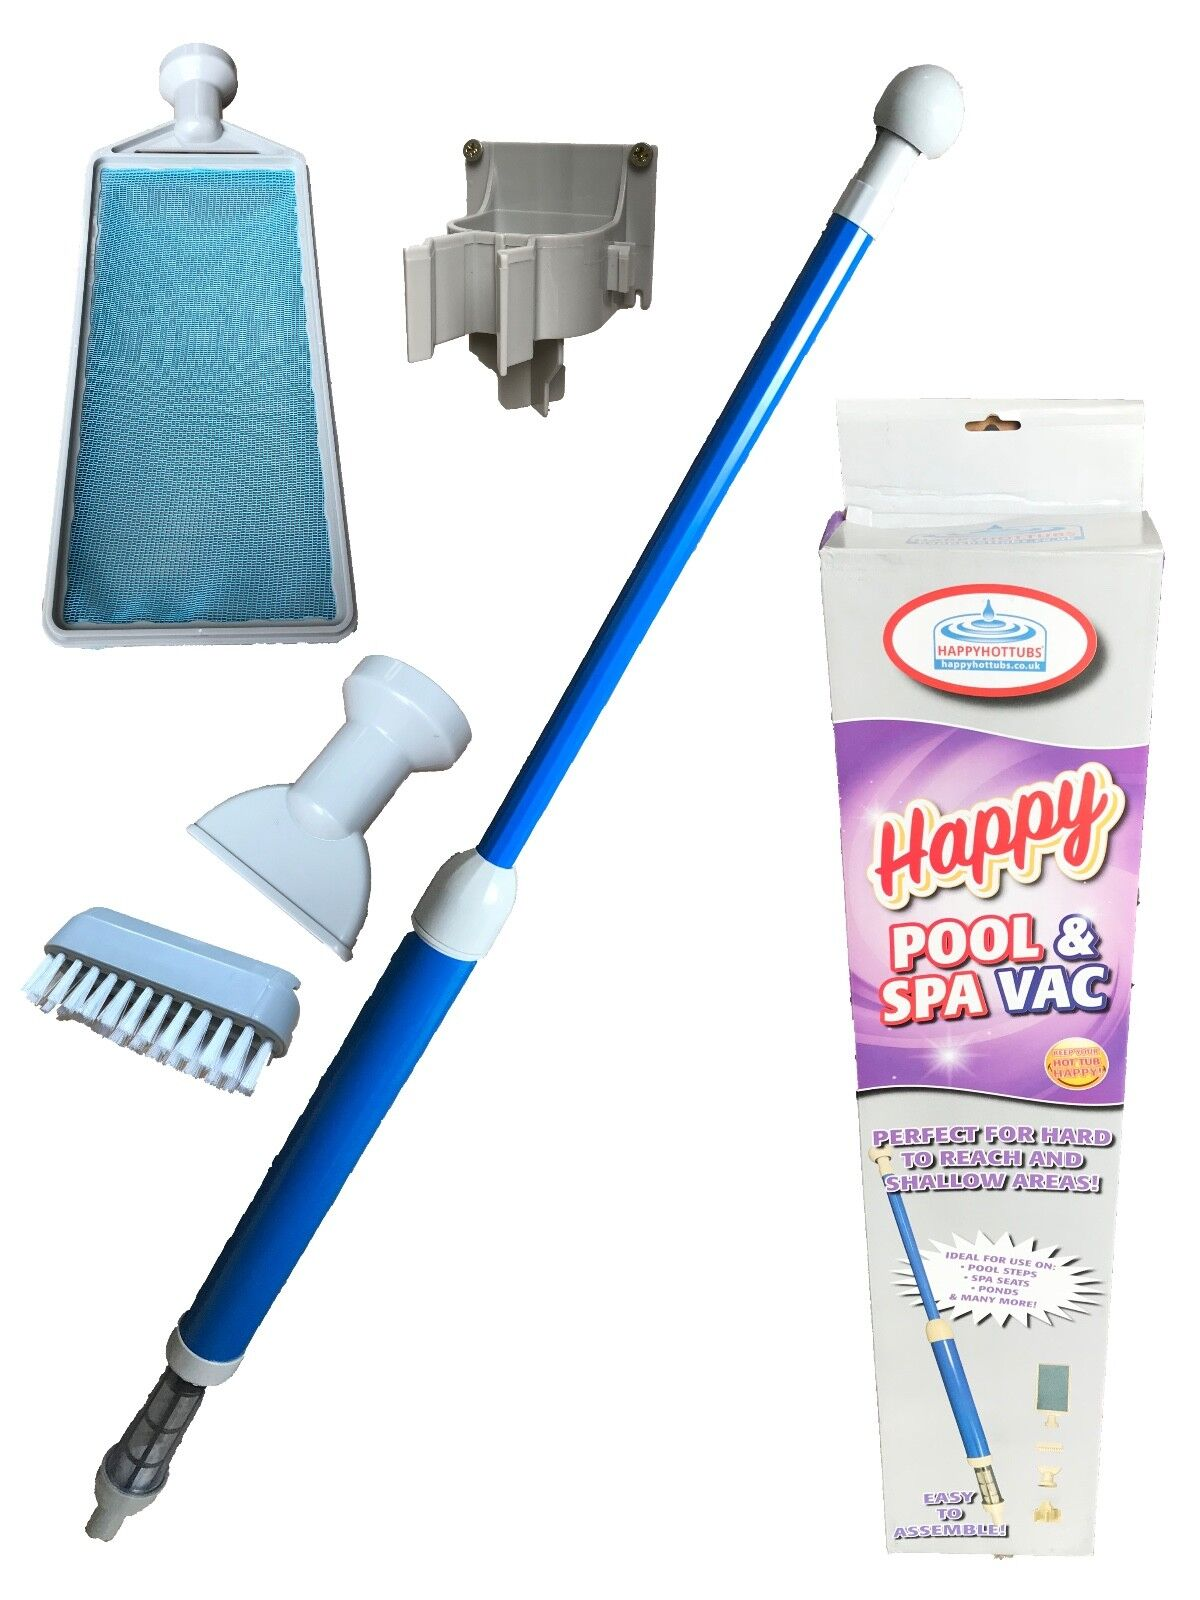 Happy Hot Tubs Pump-Action Spa Vac Hoover Vacuum Remove Sand Grit Swimming Pool